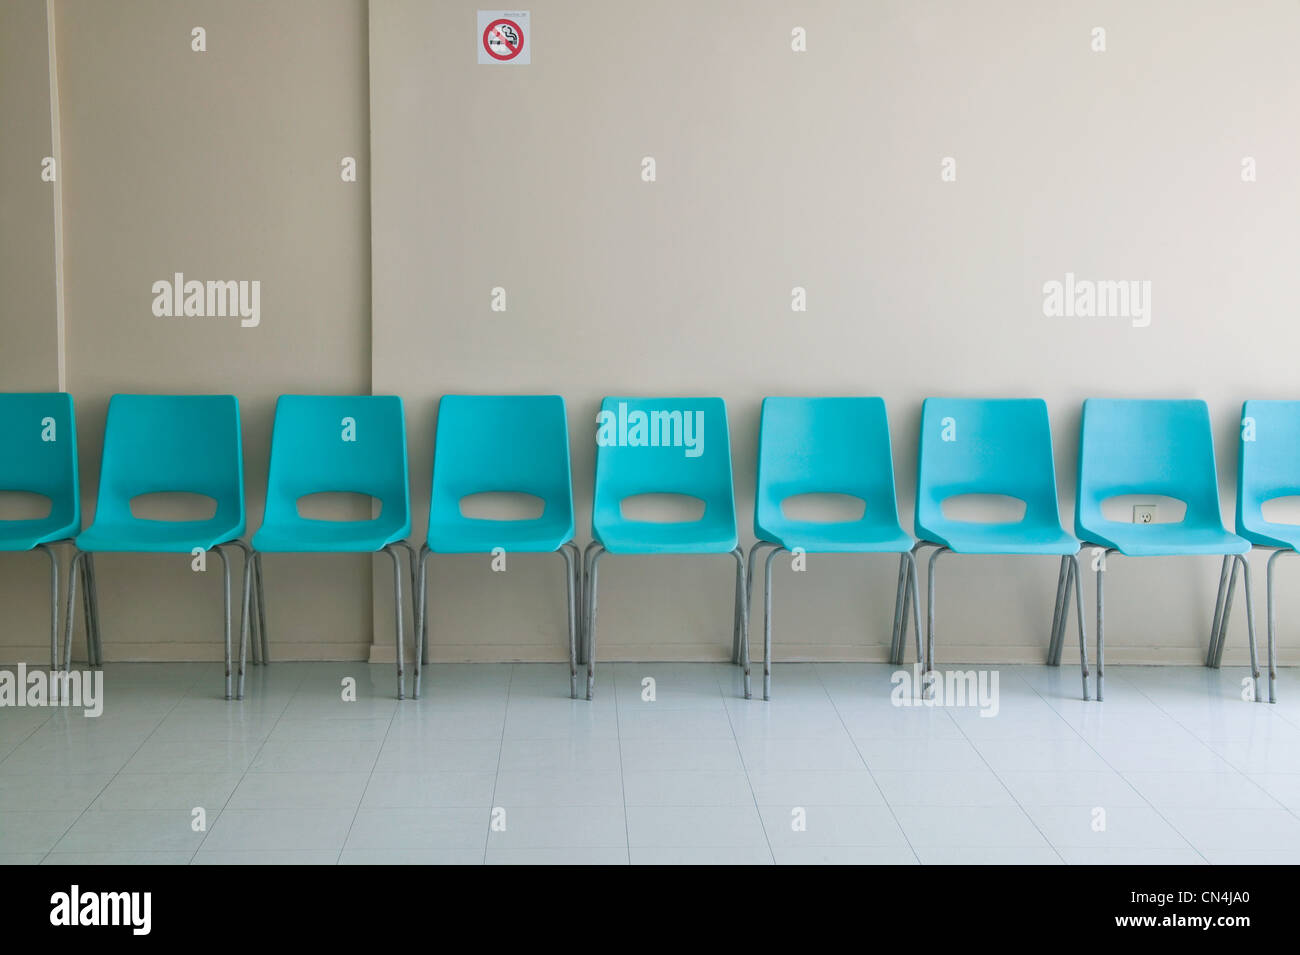 Row of plastic chairs - Stock Image